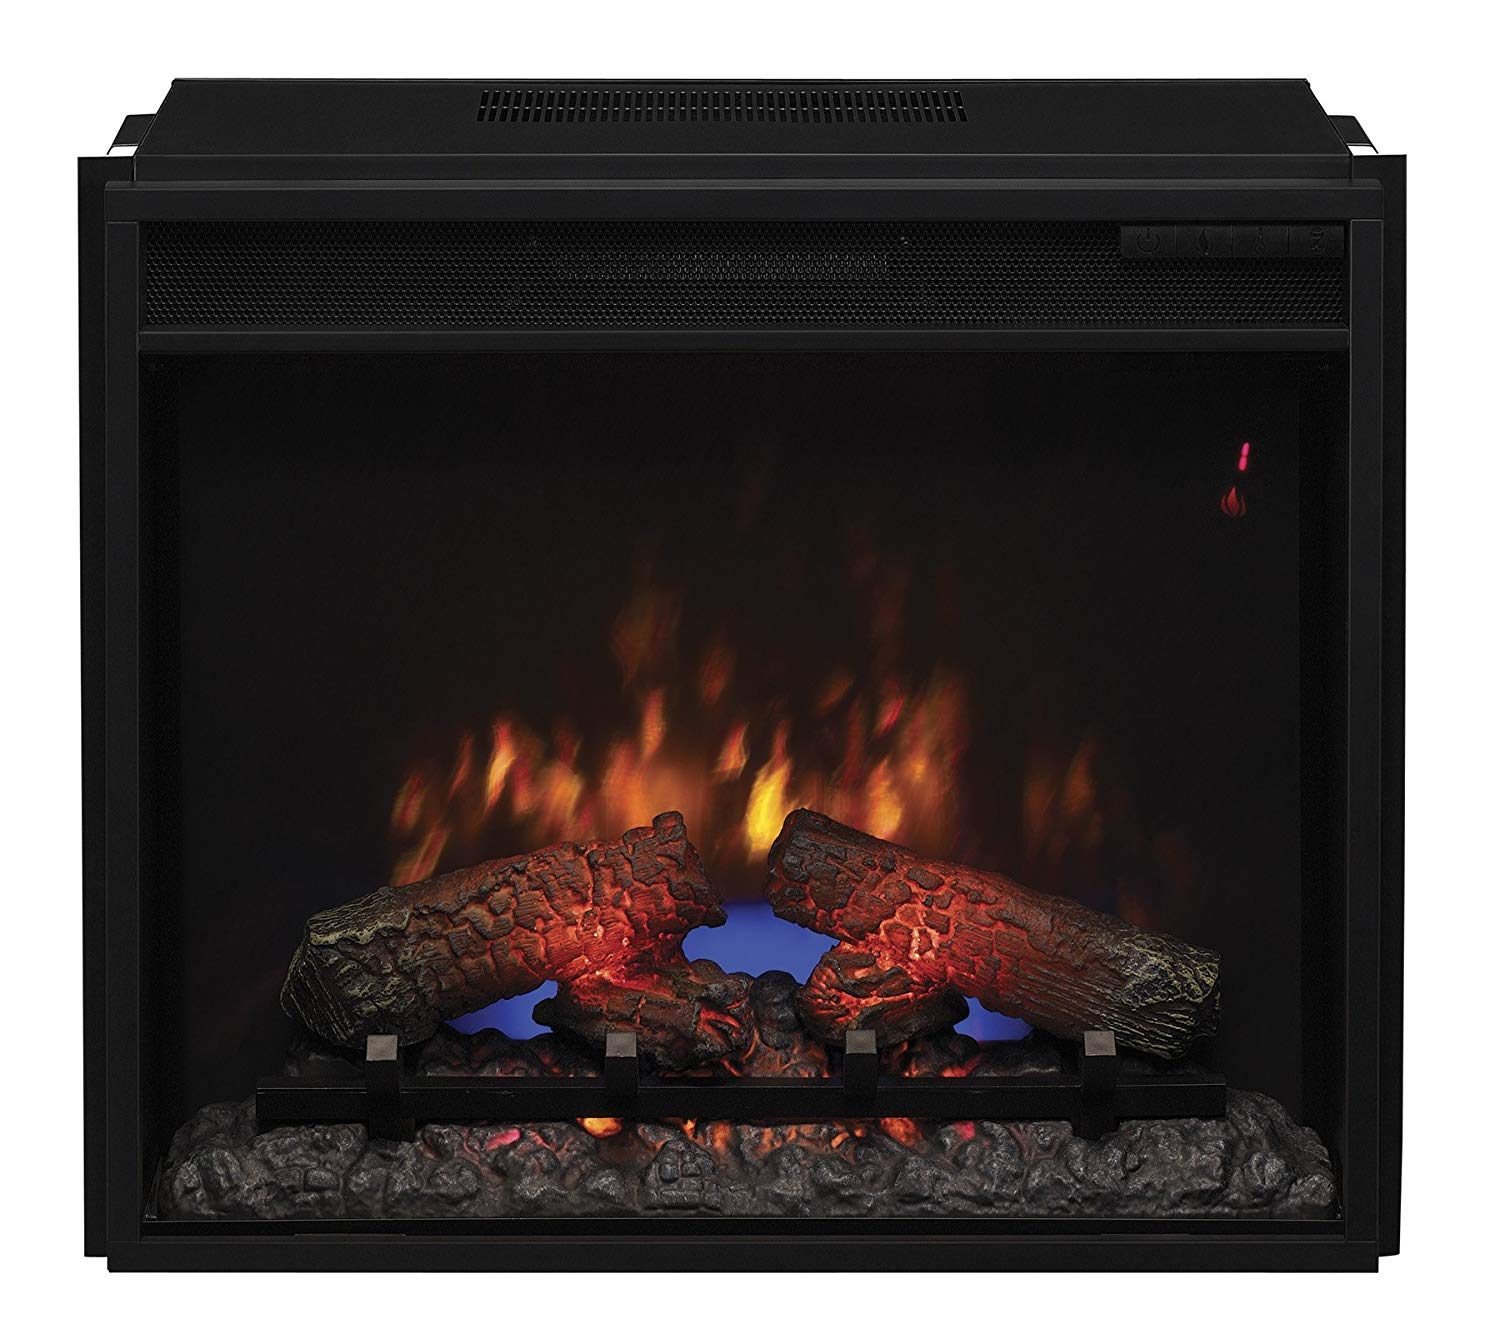 """220 Volt Electric Fireplace Unique Classicflame 23ef031grp 23"""" Electric Fireplace Insert with Safer Plug"""